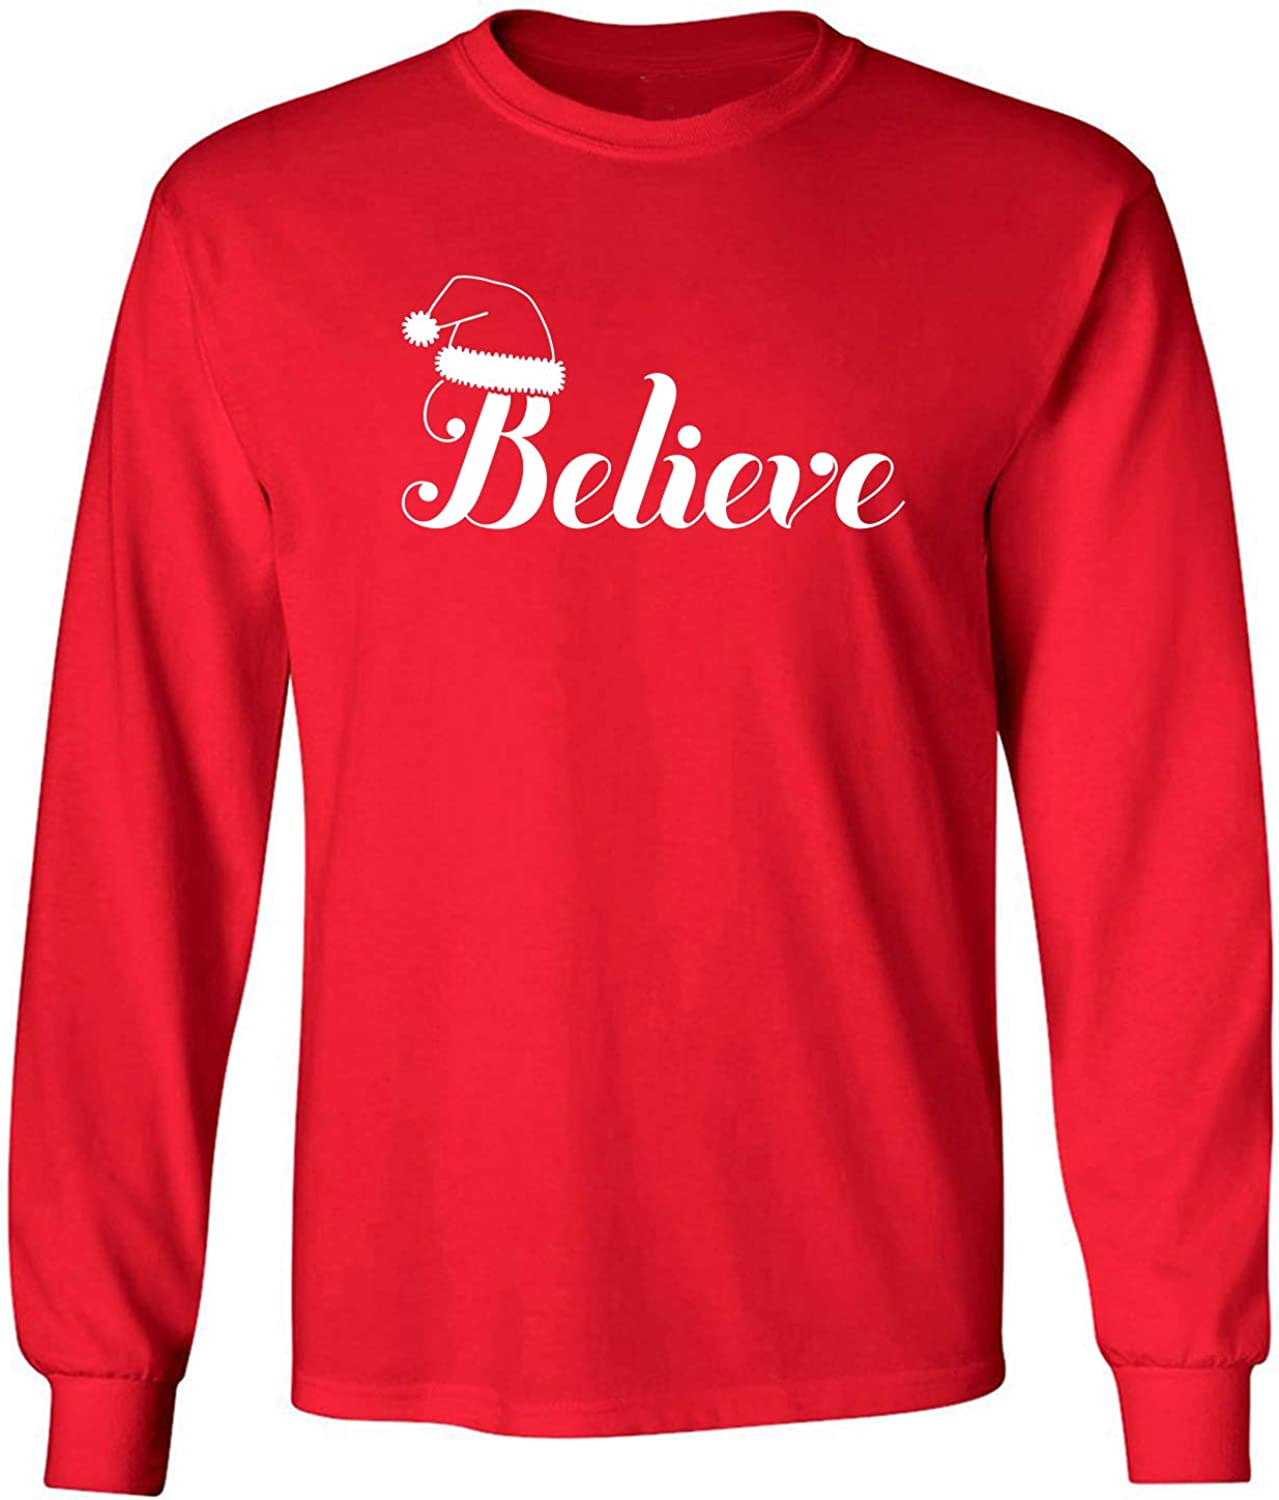 Believe Adult Long Sleeve T-Shirt in Red - XXXXX-Large